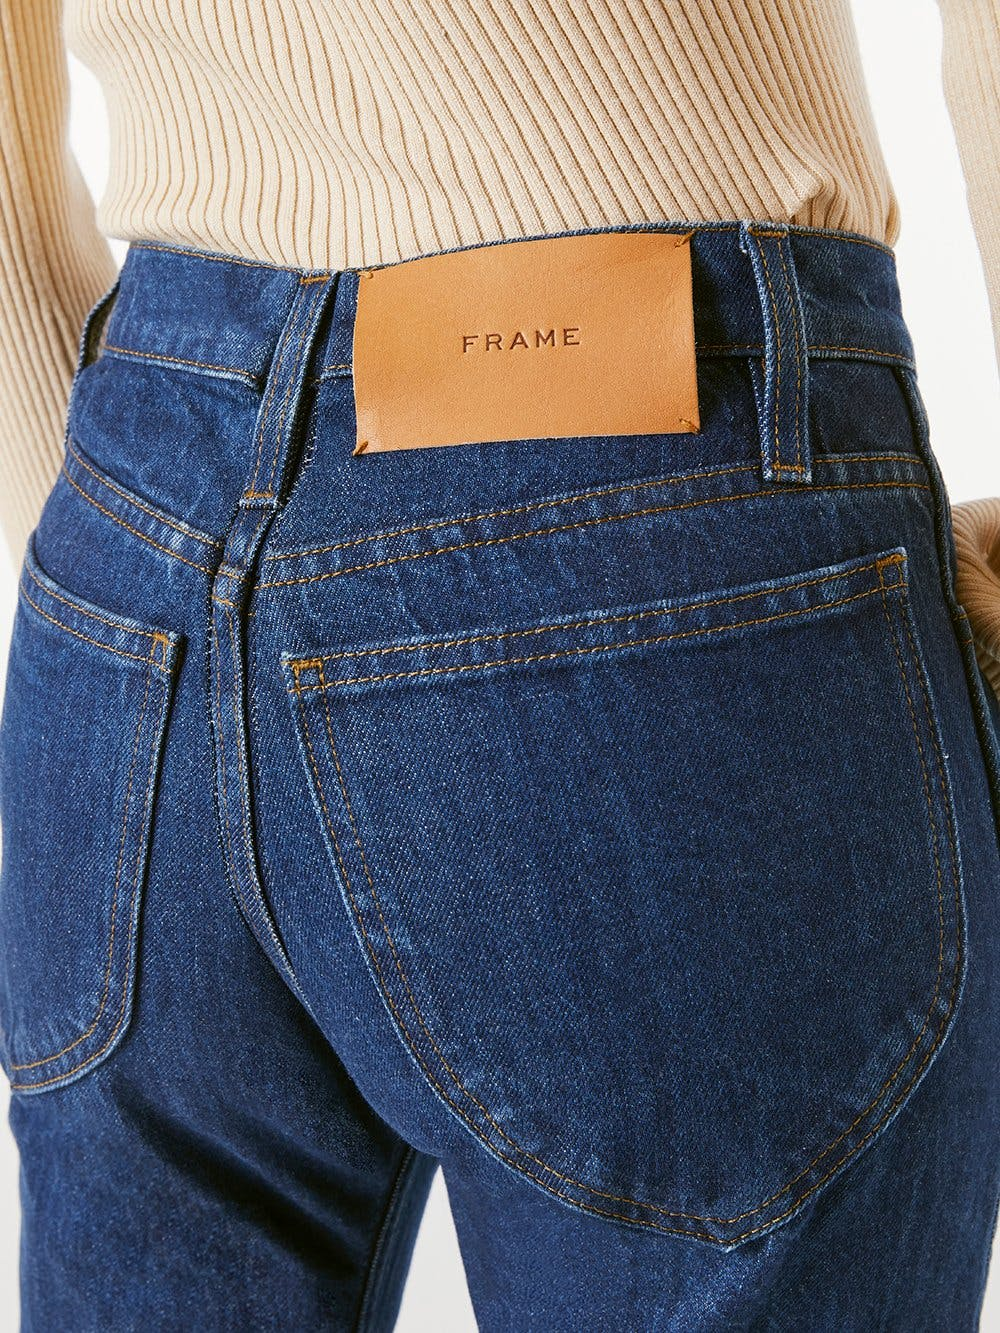 jeans detail view 3